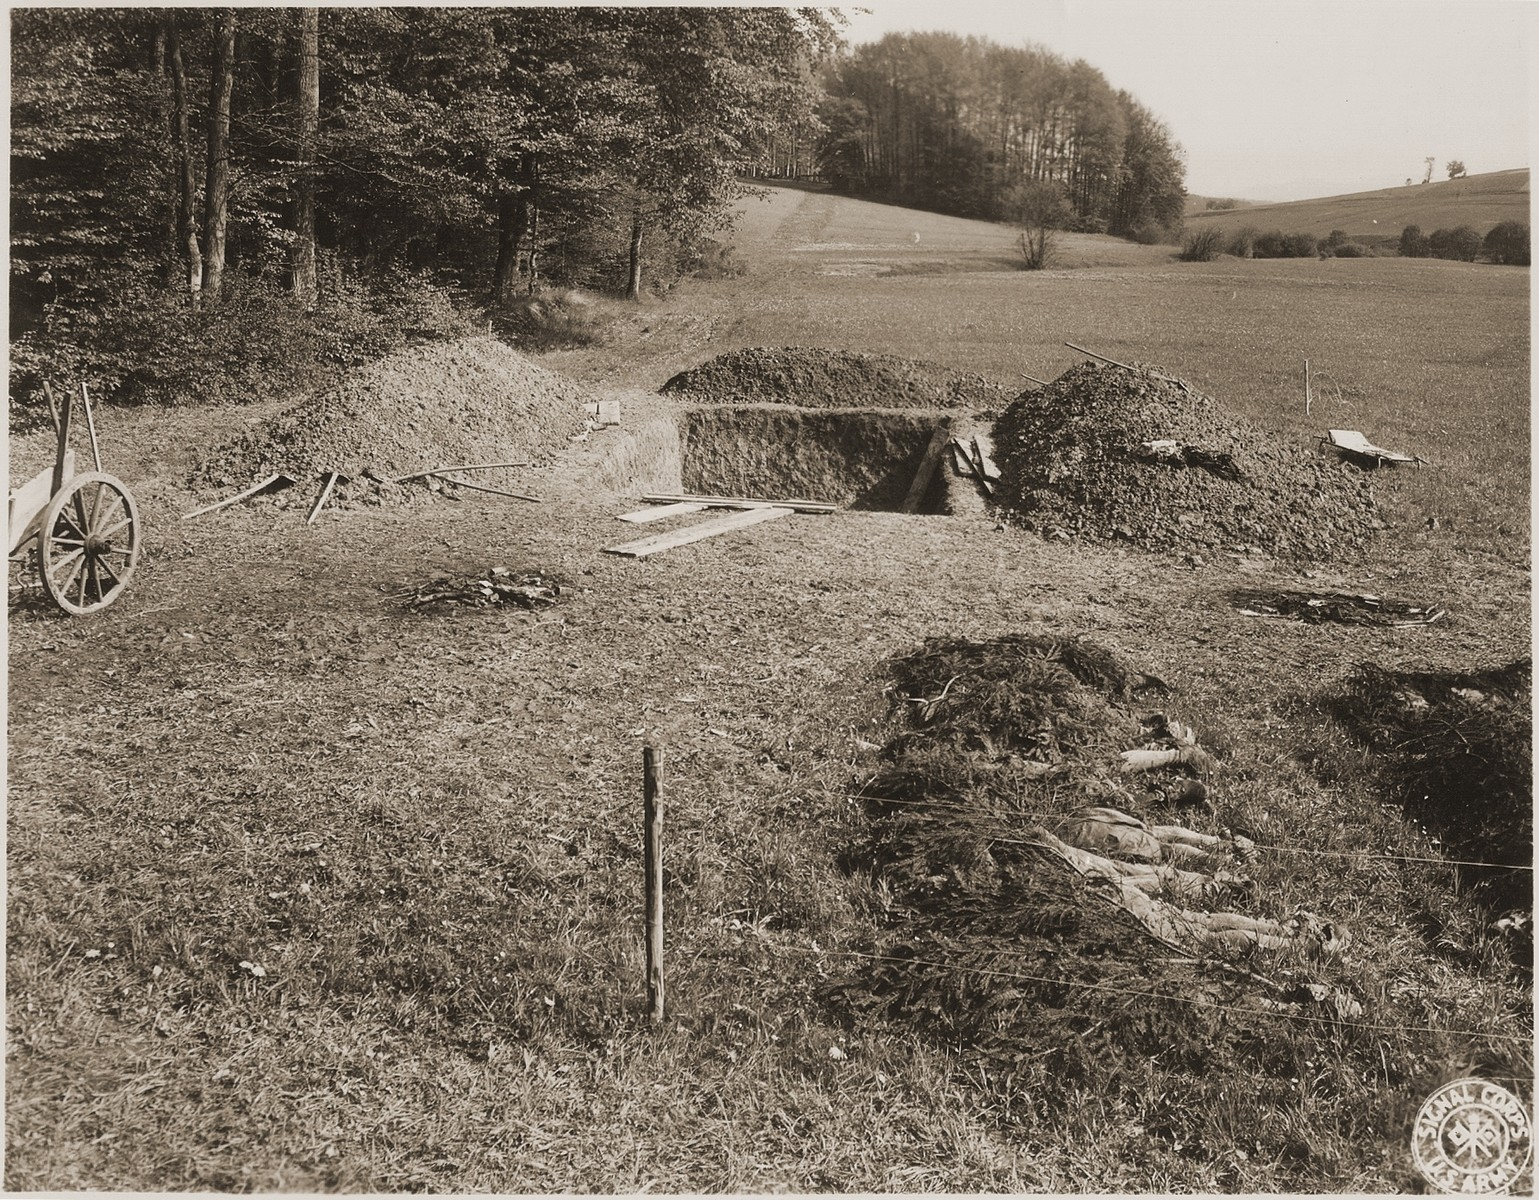 View of the mass grave near Hirzenhain from which the bodies of 87 prisoners were exhumed.